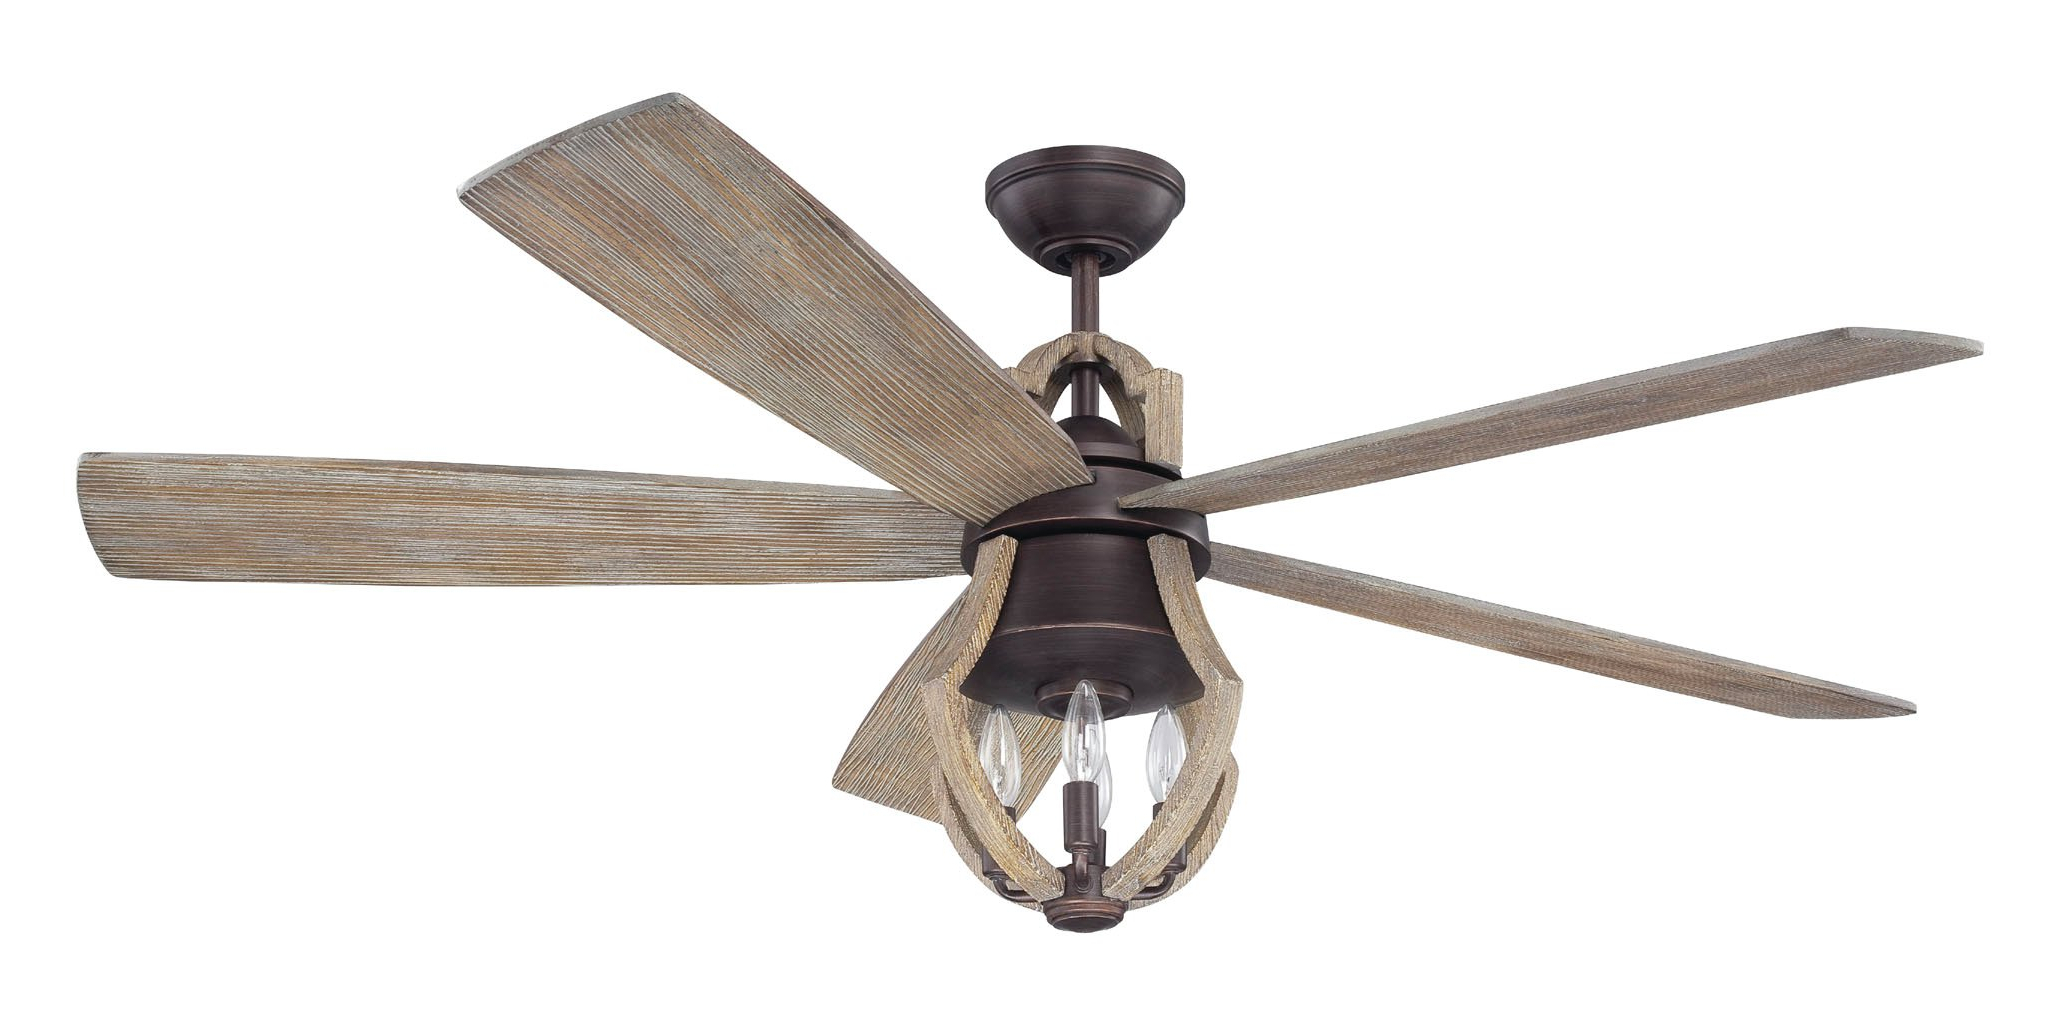 "Well Known Laurel Foundry Modern Farmhouse 56"" Marcoux 5 Blade Ceiling Fan With Remote, Light Kit Included Intended For Lindsay 5 Blade Ceiling Fans (View 6 of 20)"